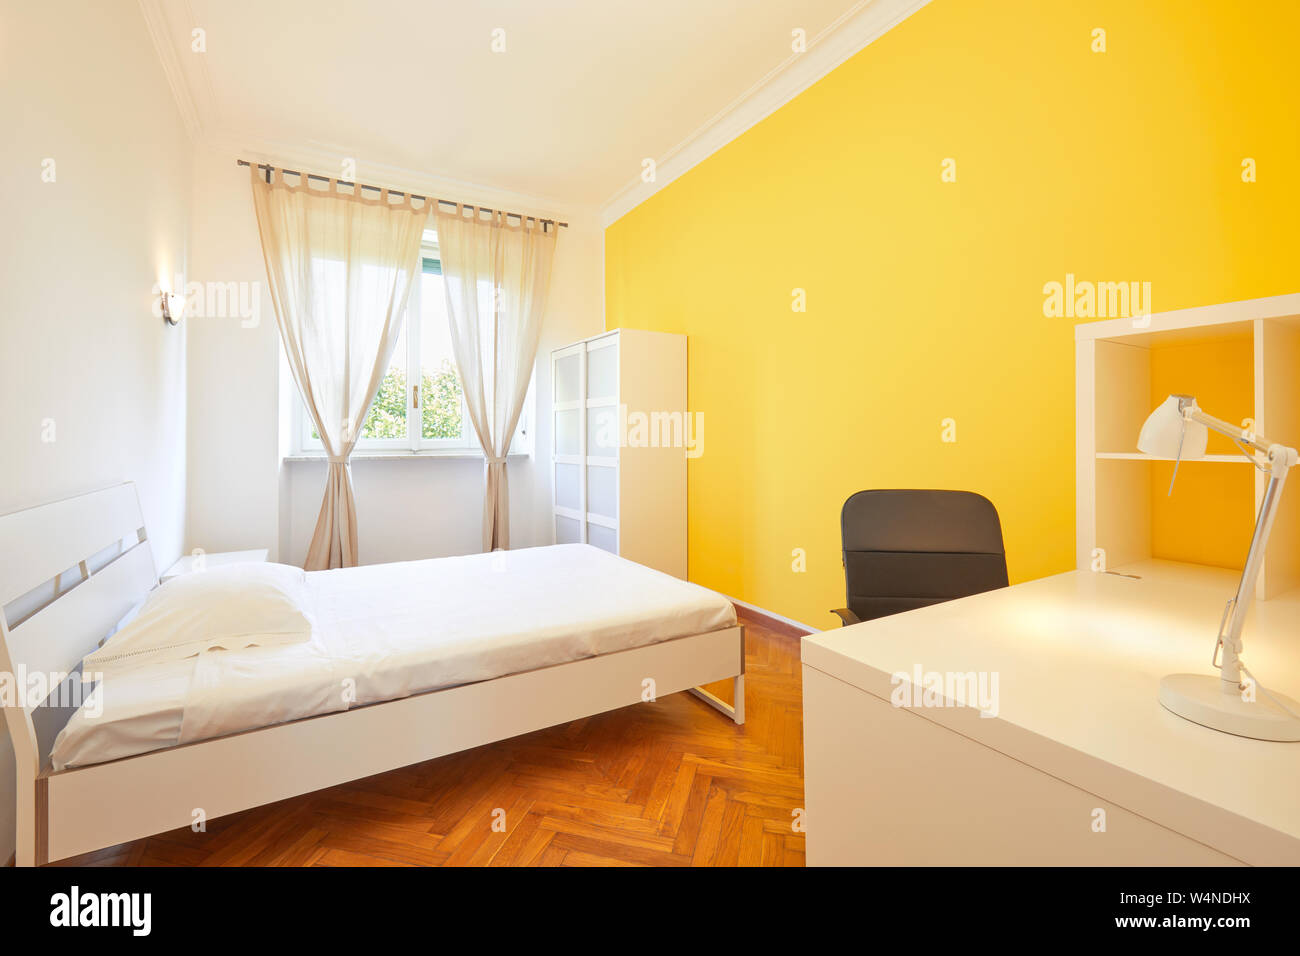 Bedroom for rent in renovated apartment with yellow wall and ...